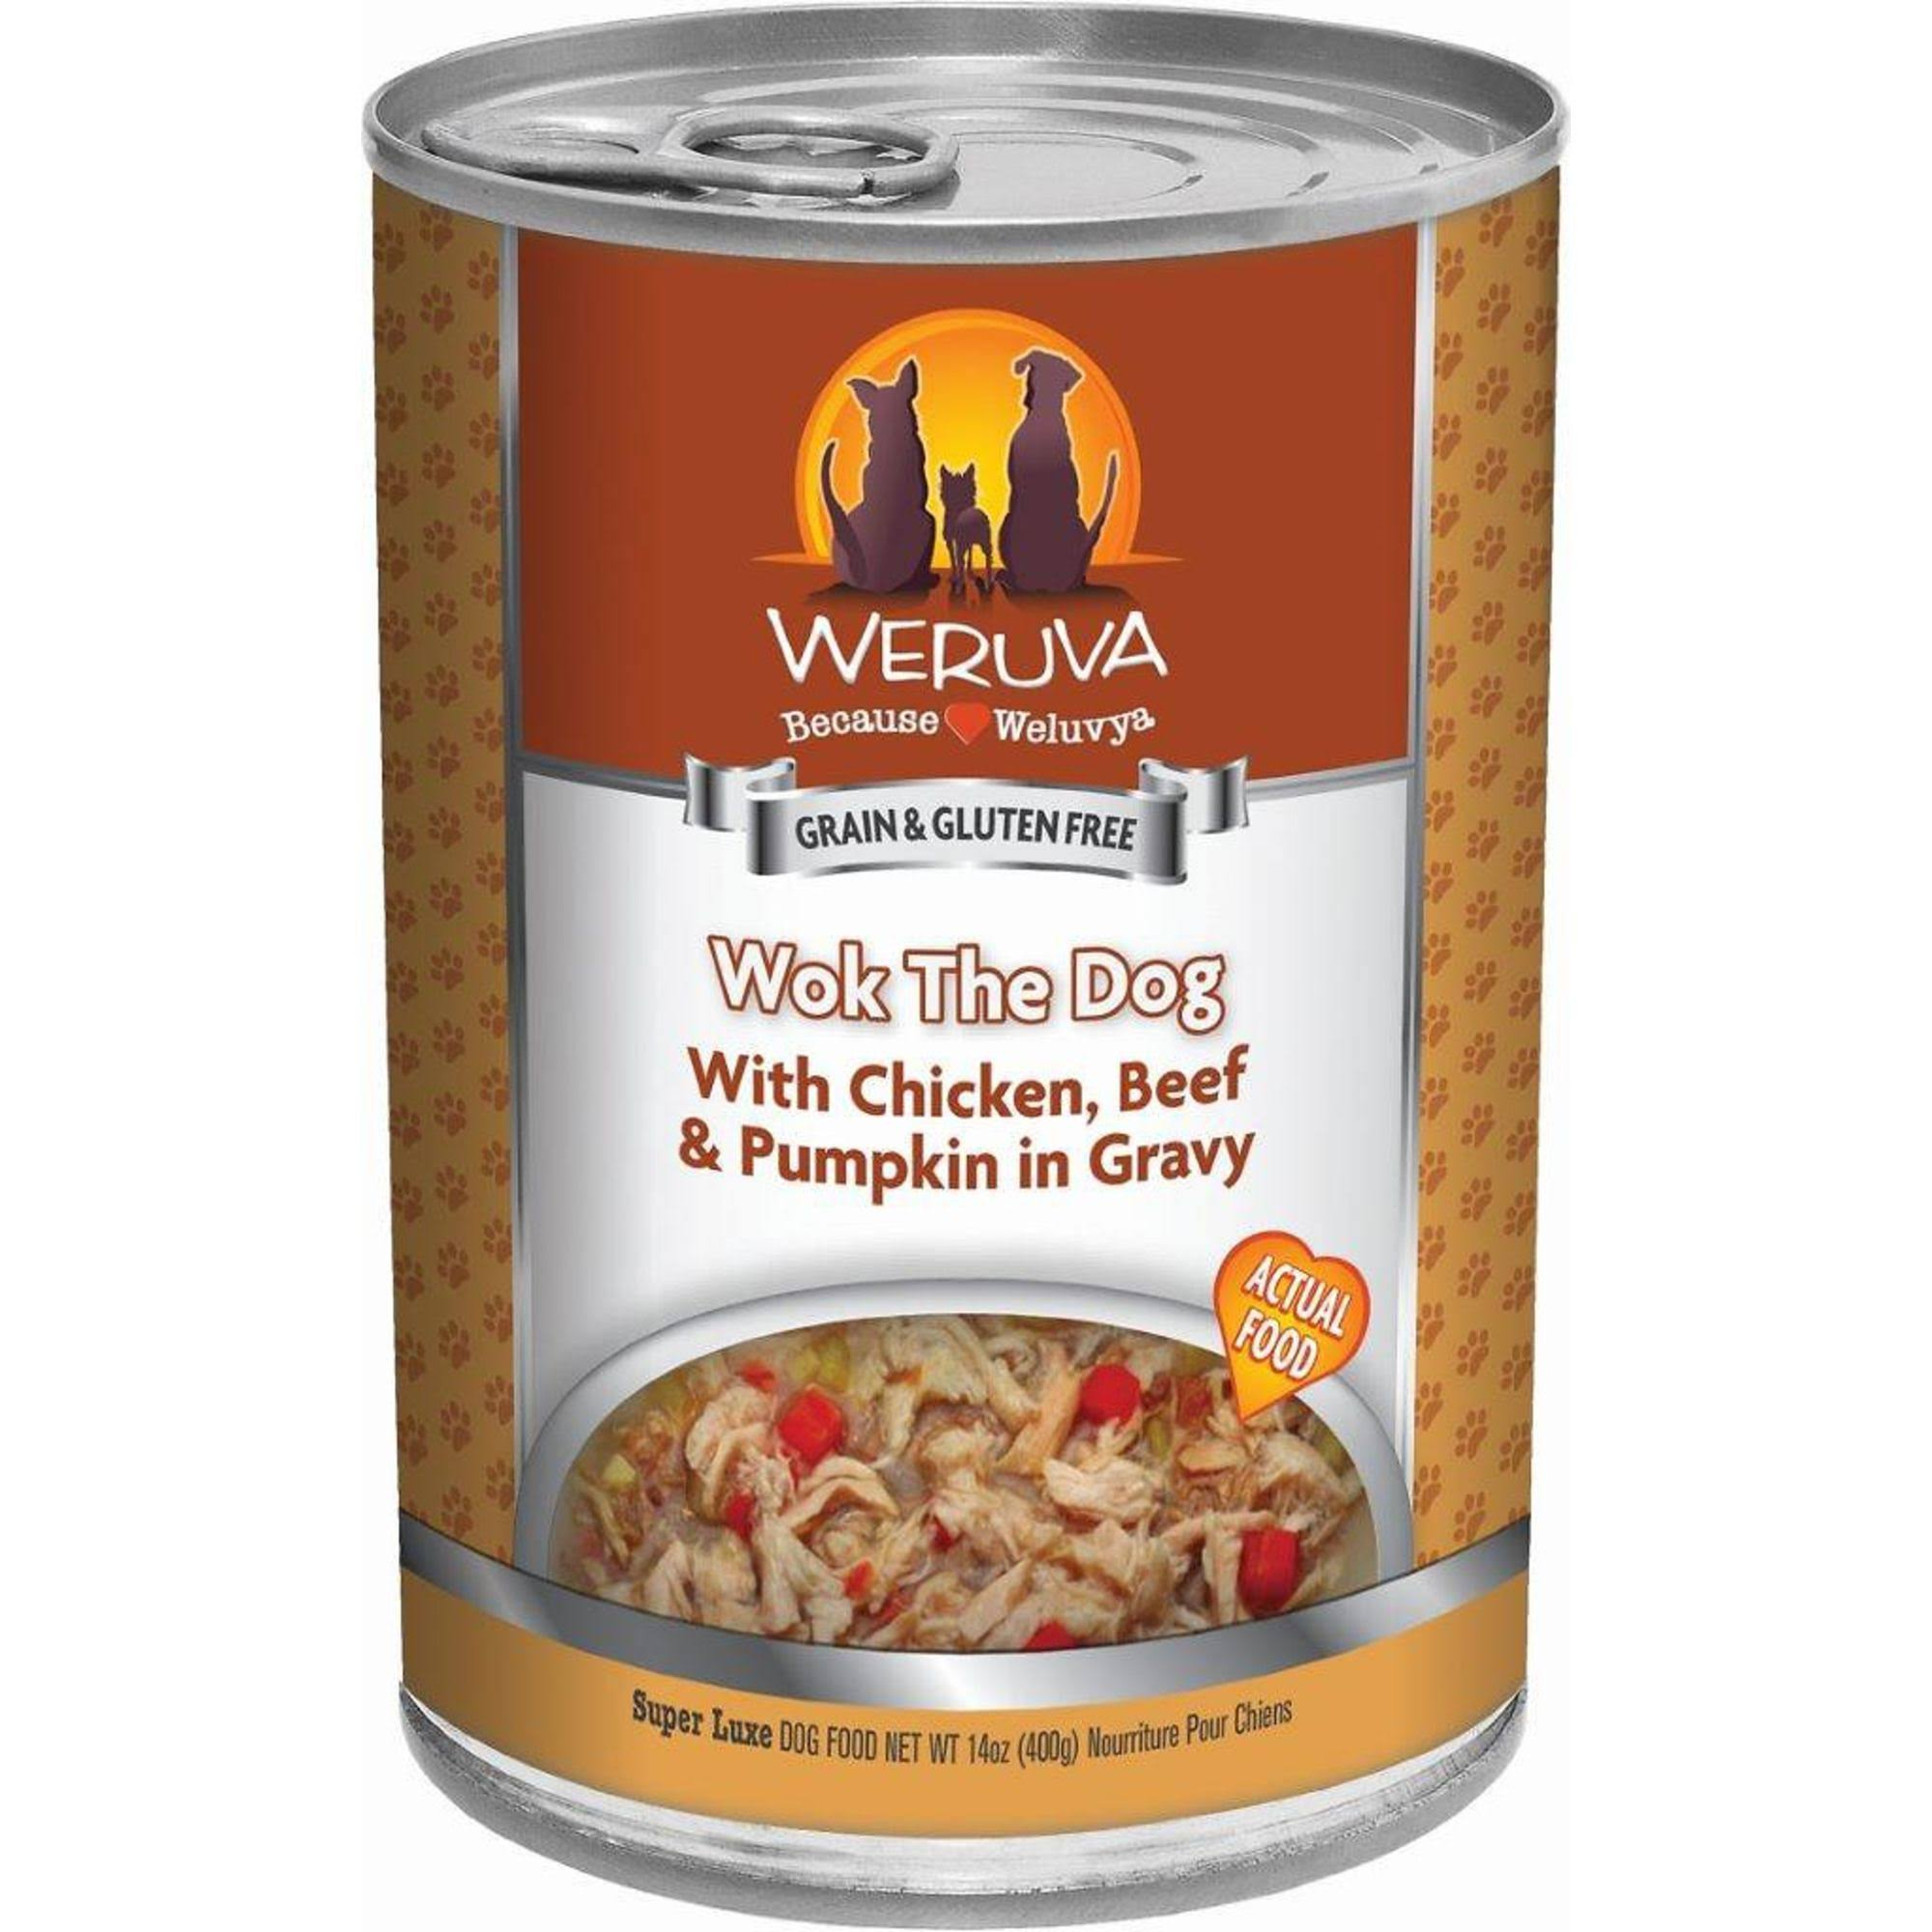 Weruva Grain Free Canned Dog Food - Wok the Dog, 14oz